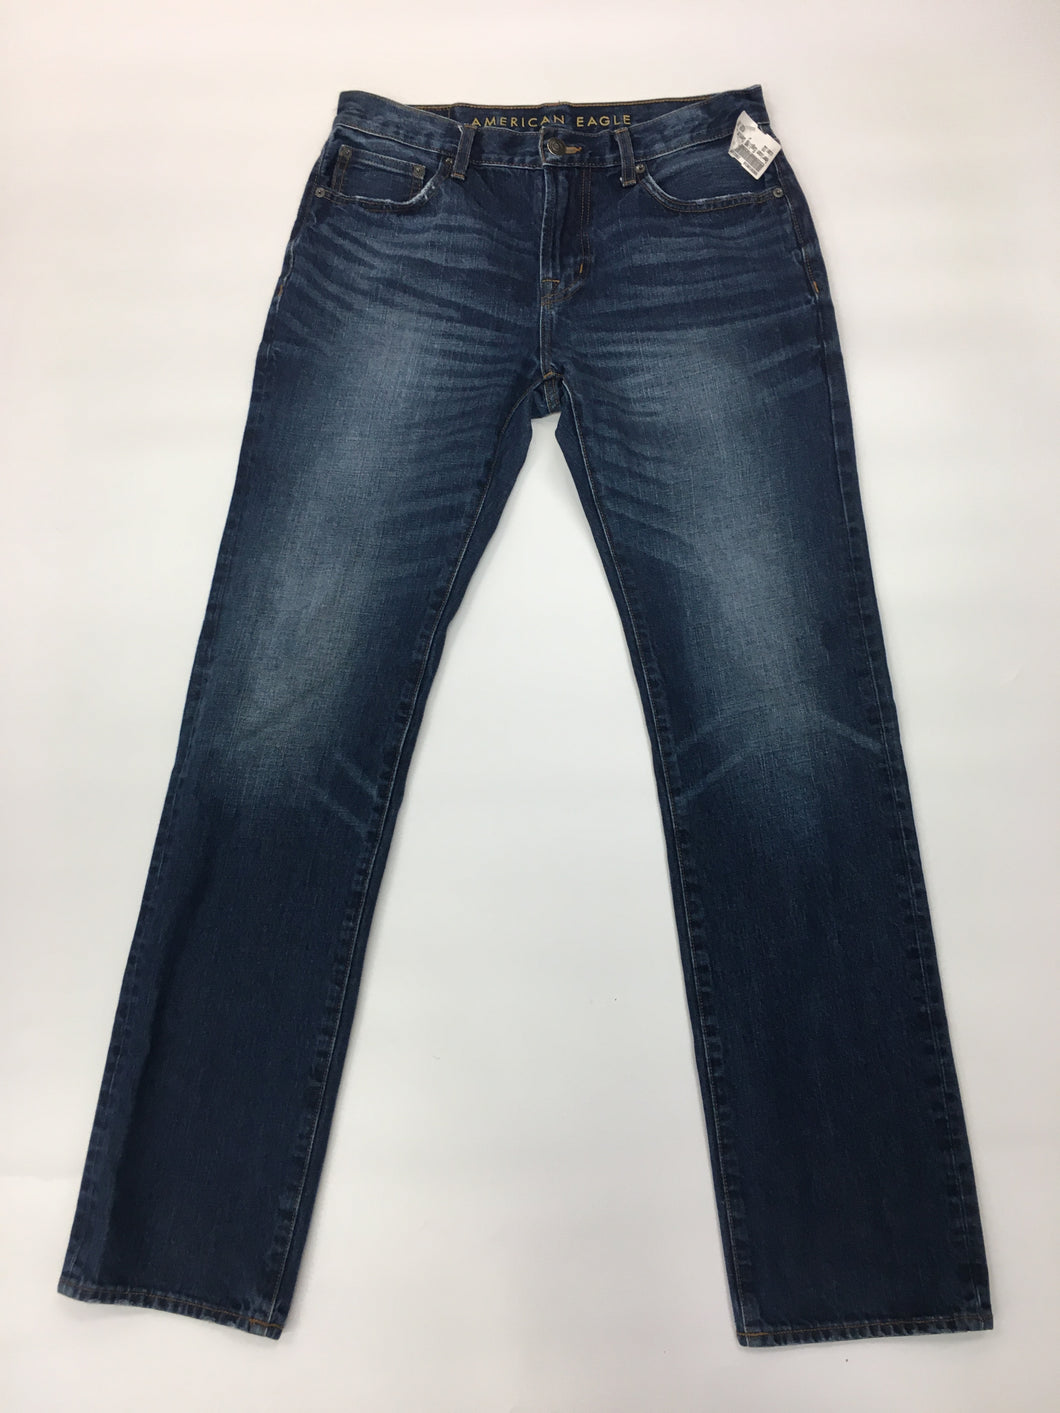 American Eagle Denim L36 32